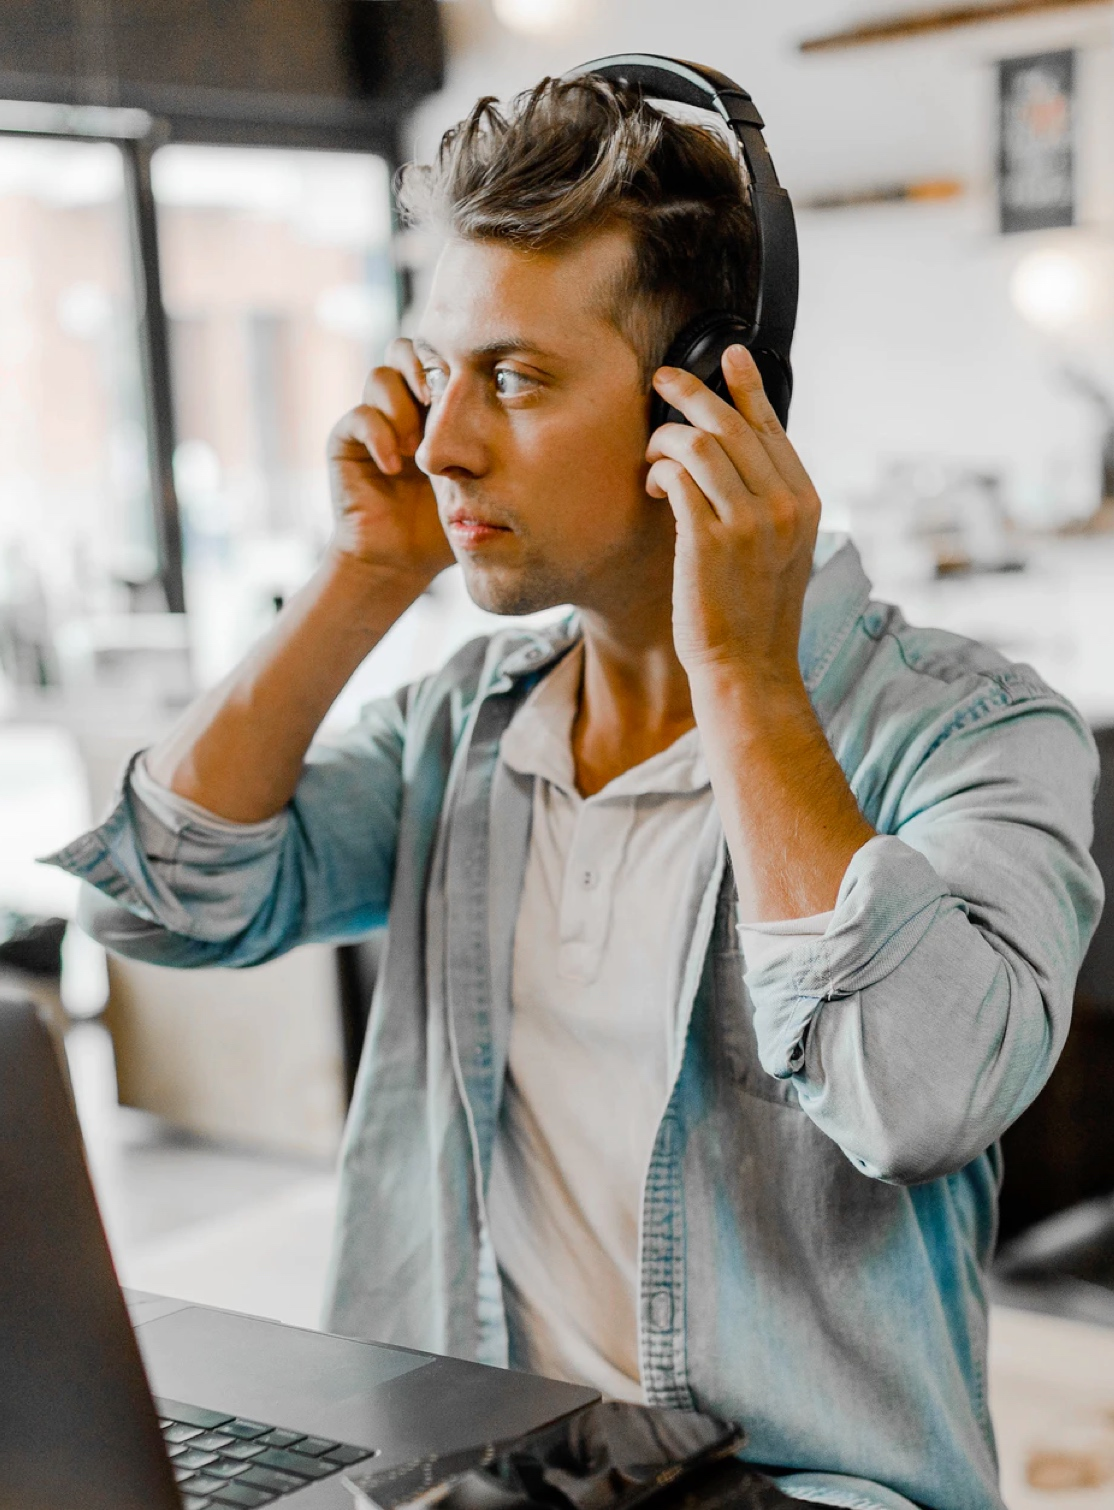 Sales manager with headphones on